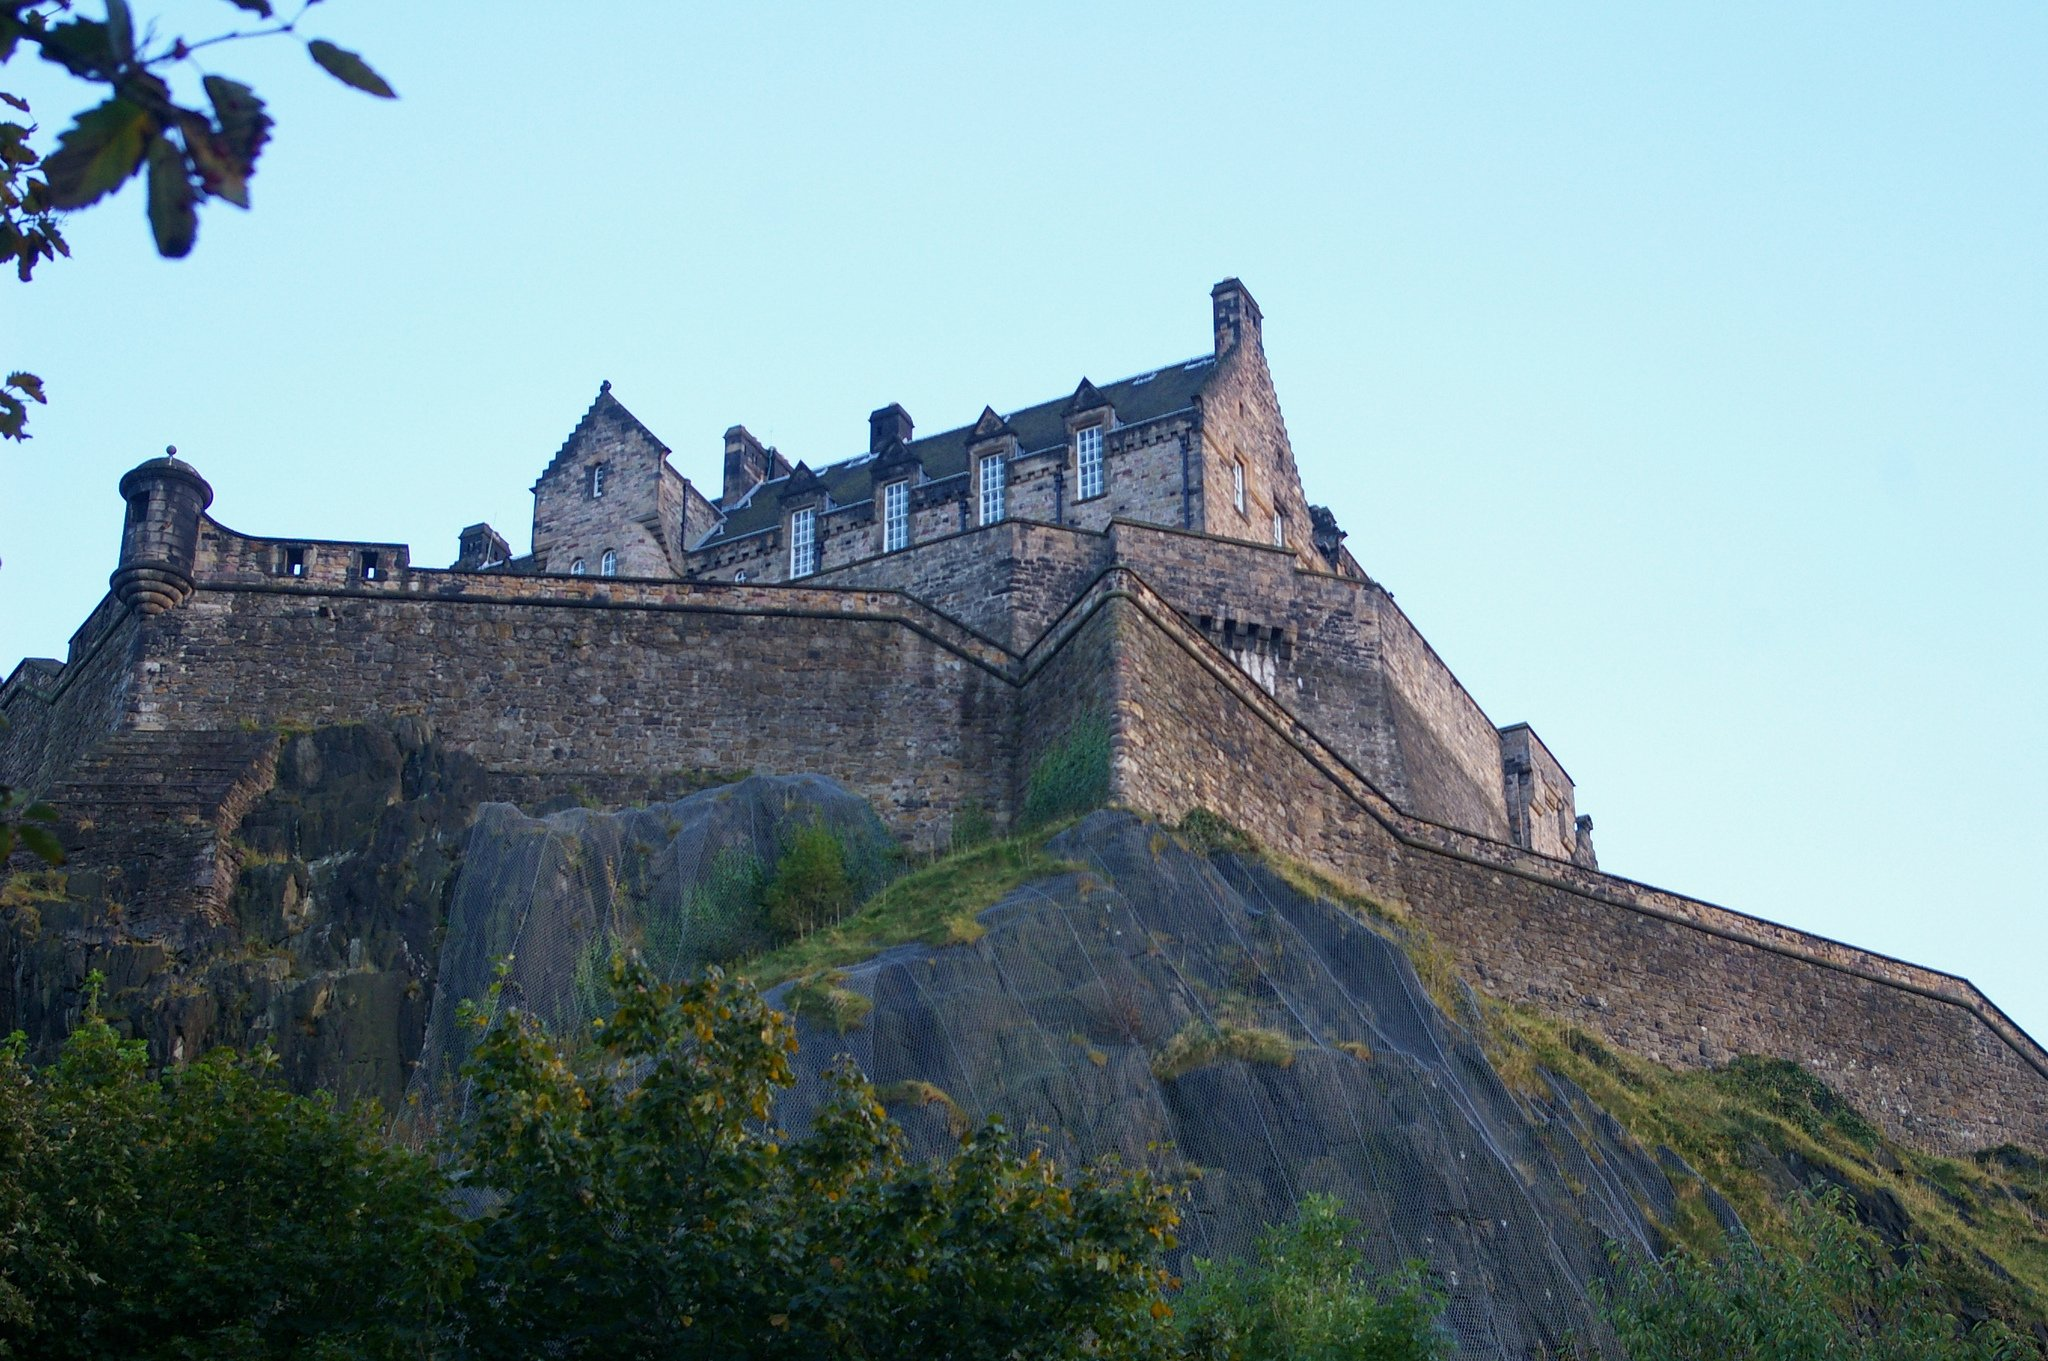 Edinburgh Castle seen from Princes Street Gardens by: Hec Tate (CC)